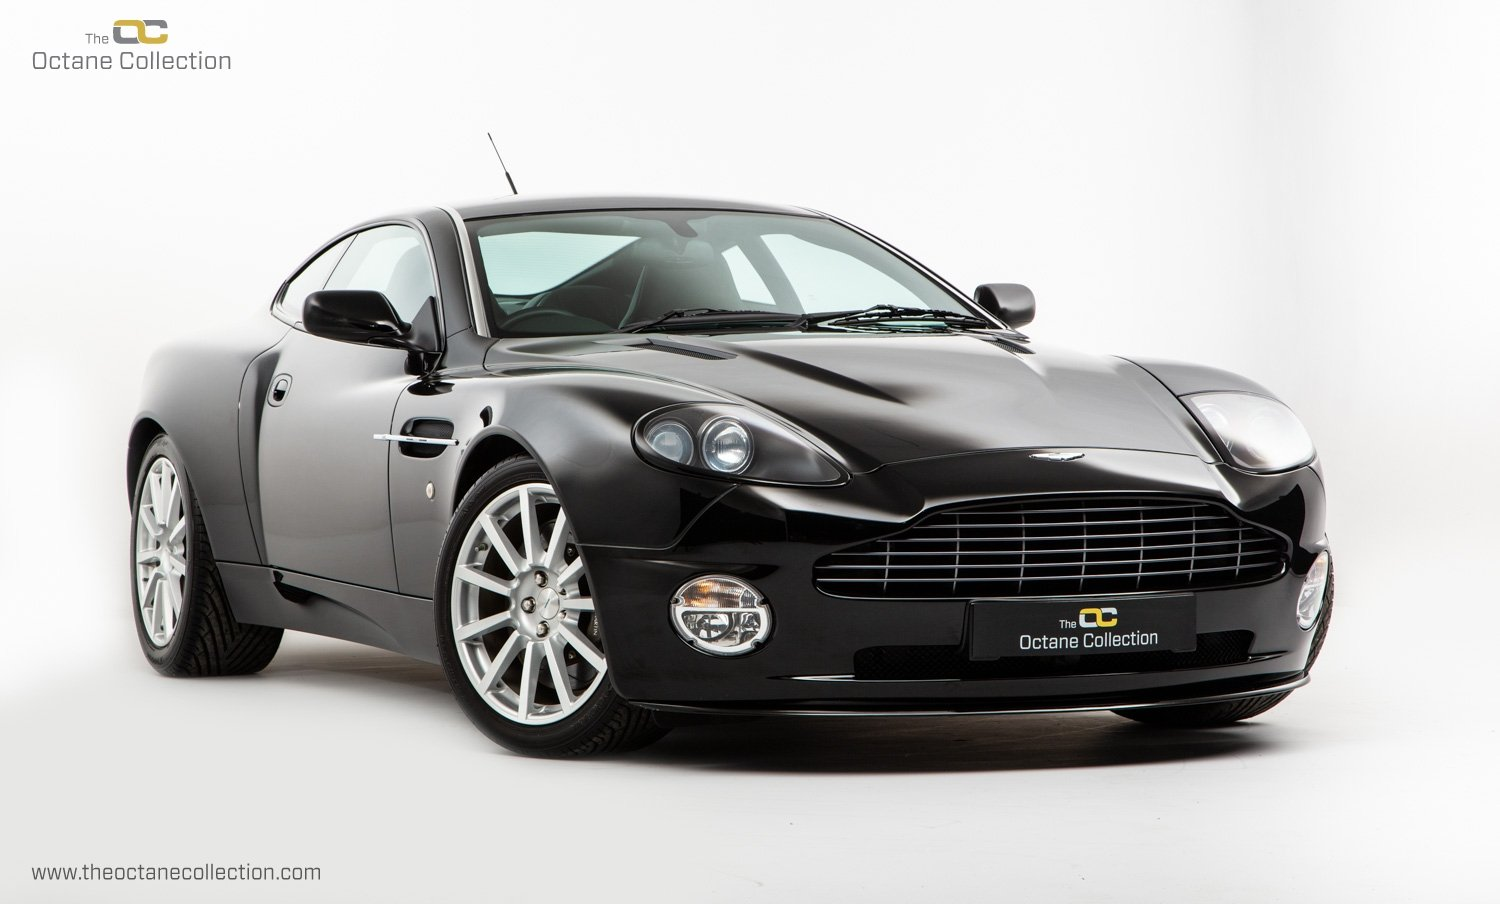 2001 Aston Martin Vanquish Aston Martin Vanquish S Ultimate Edition 1 Of 50 Full Supplying Dealer History Uk Supplied Classic Driver Market